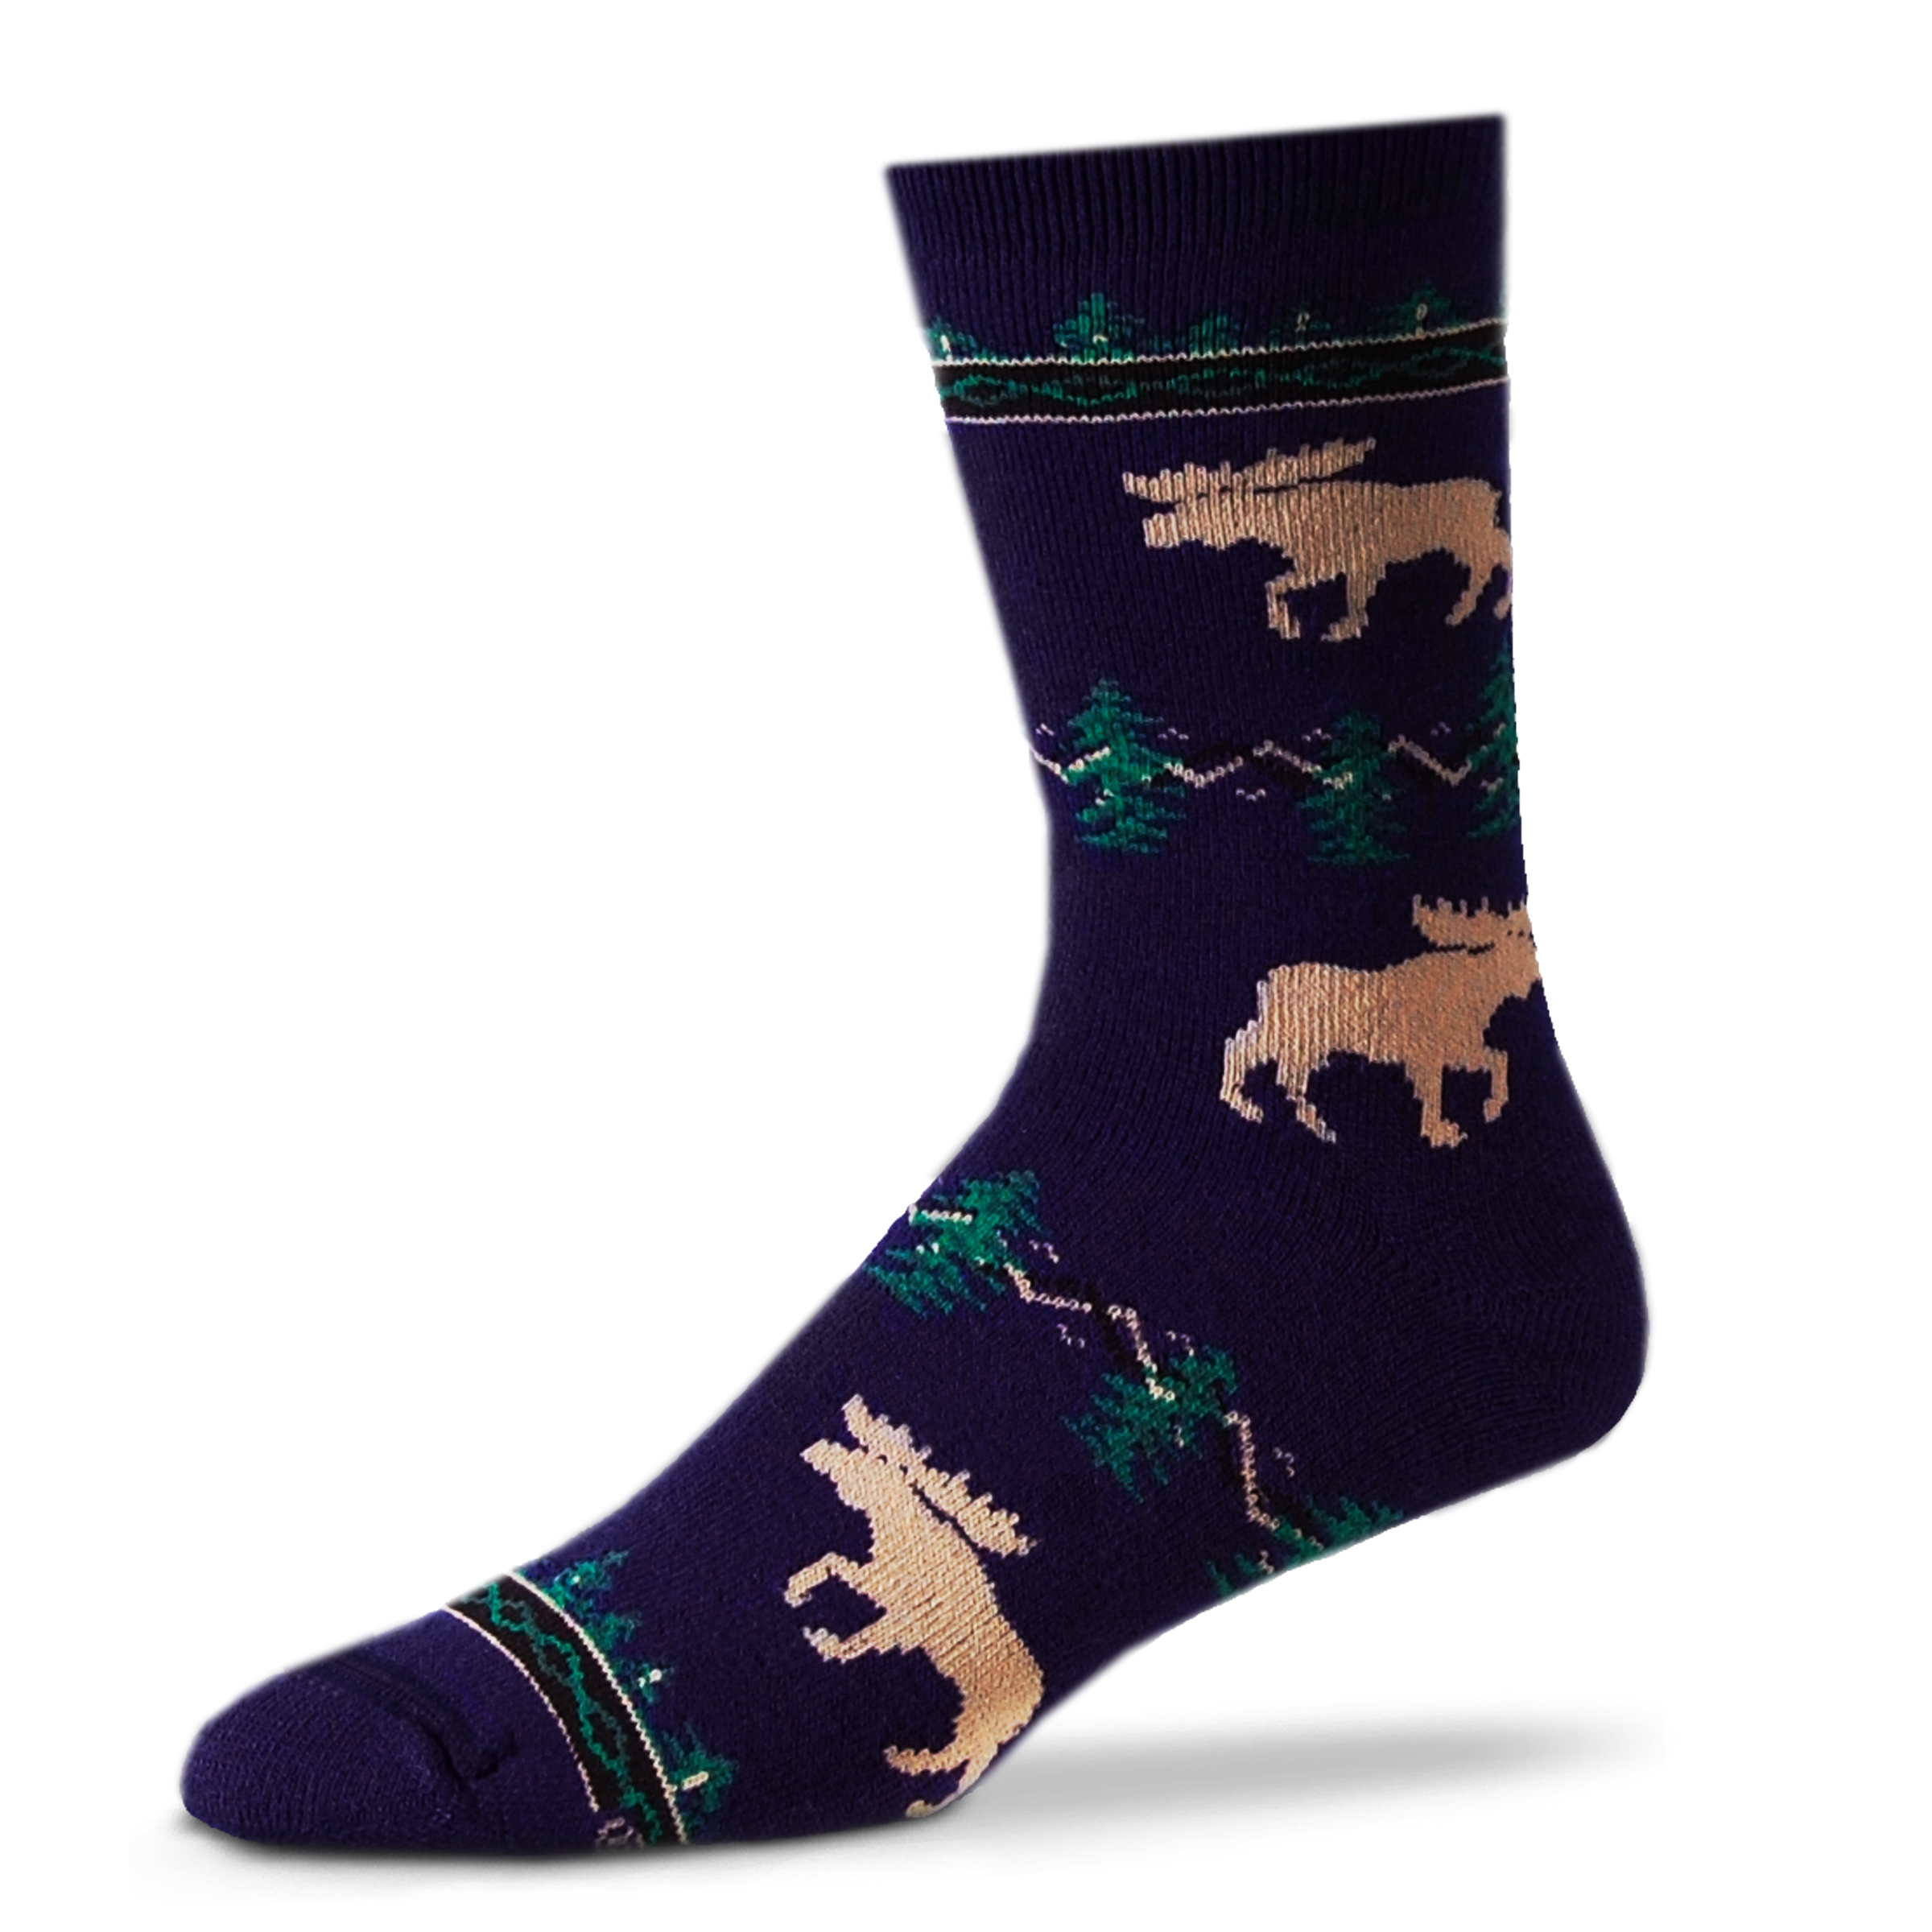 Blue Moose Socks with Silhouette - Large